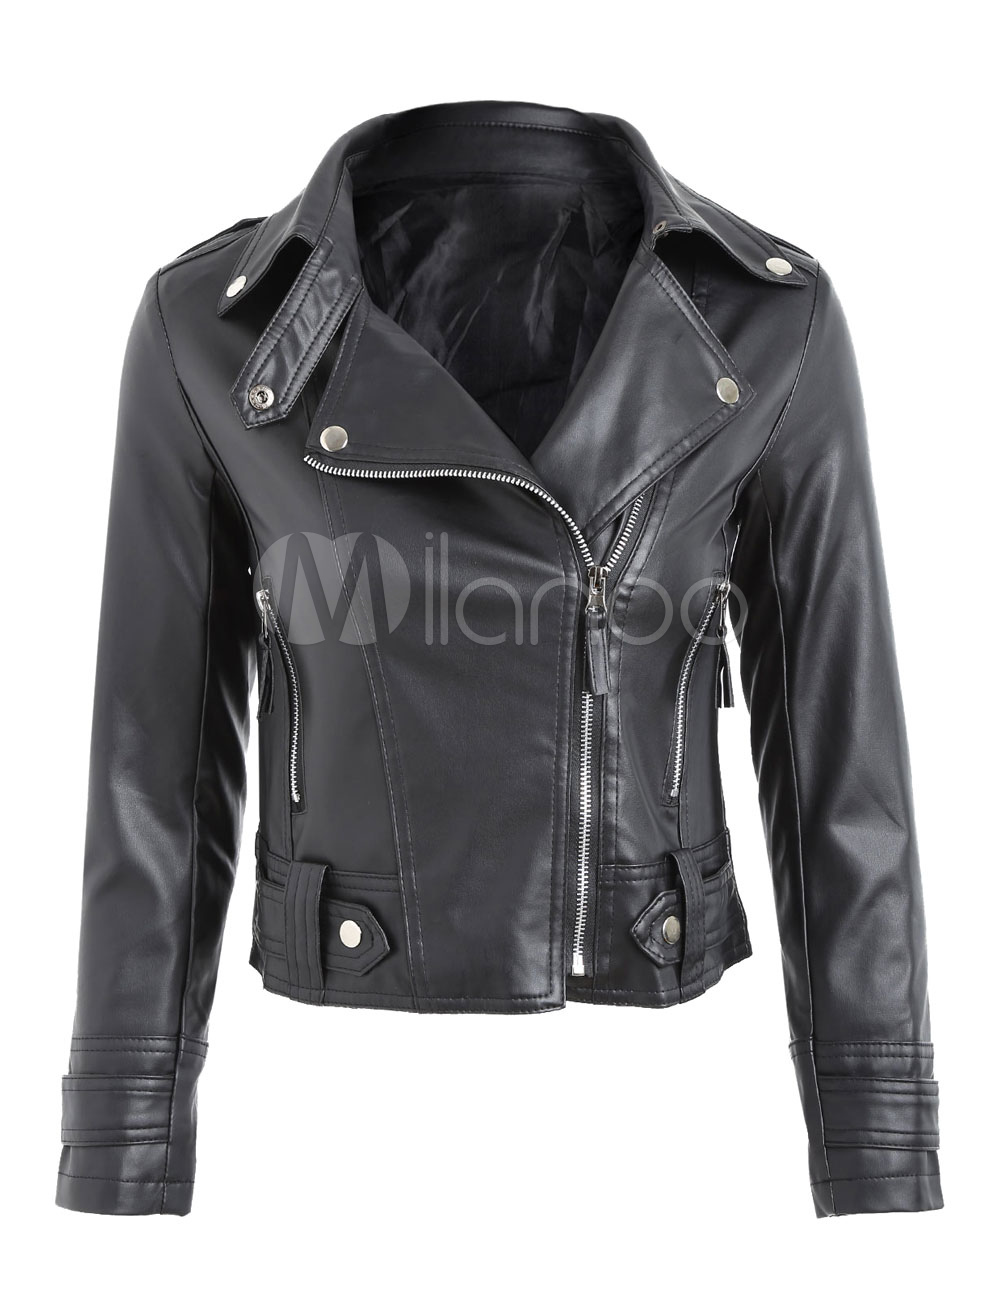 Buy Black Leather Jacket Long Sleeve Turndown Collar PU Moto Jackets For Women for $33.24 in Milanoo store